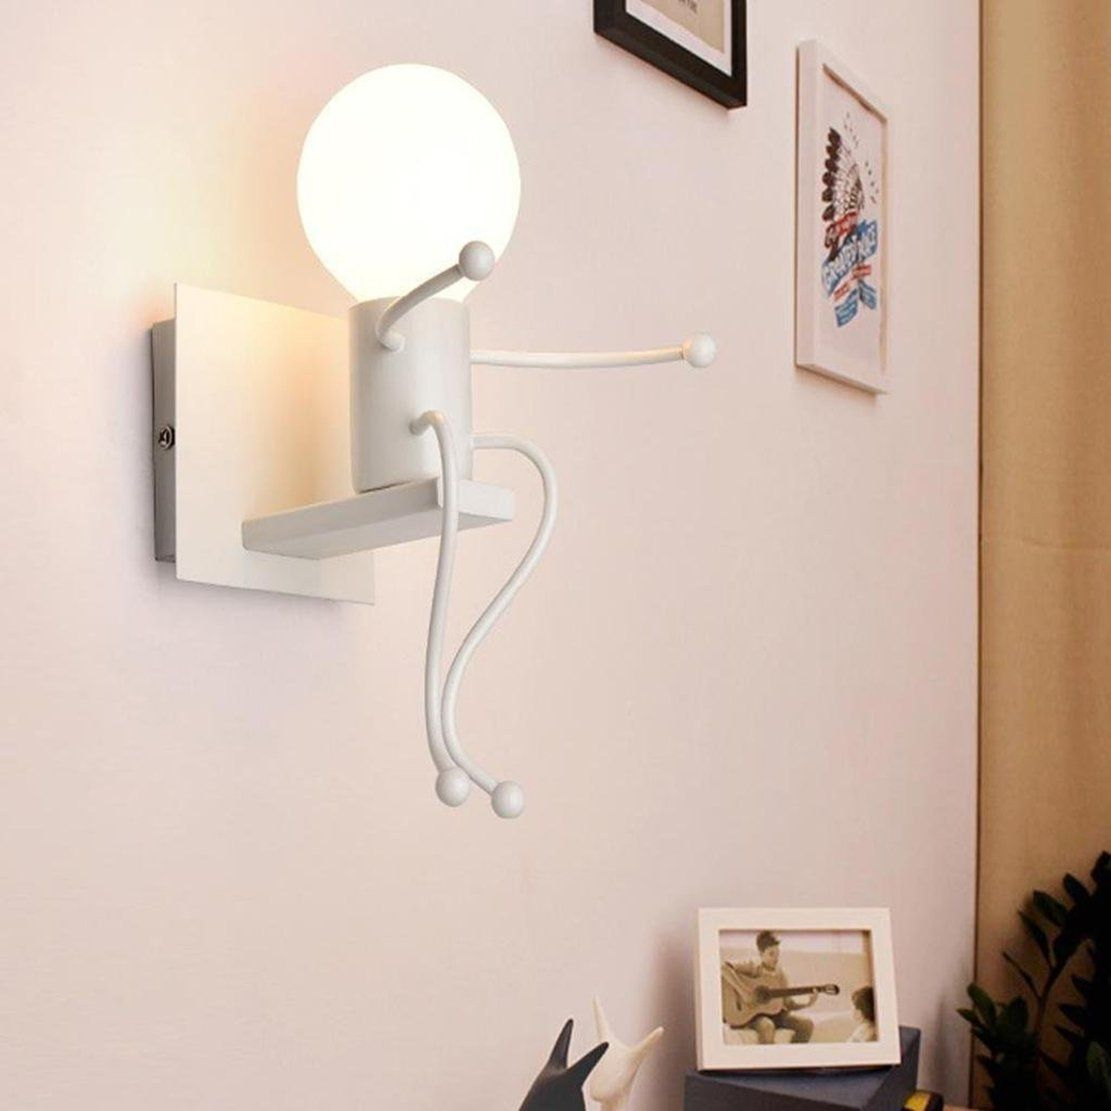 Cool Product Alert Cute Led Wall Sconces Wall Lights Led Wall Sconce Wall Mount Light Fixture